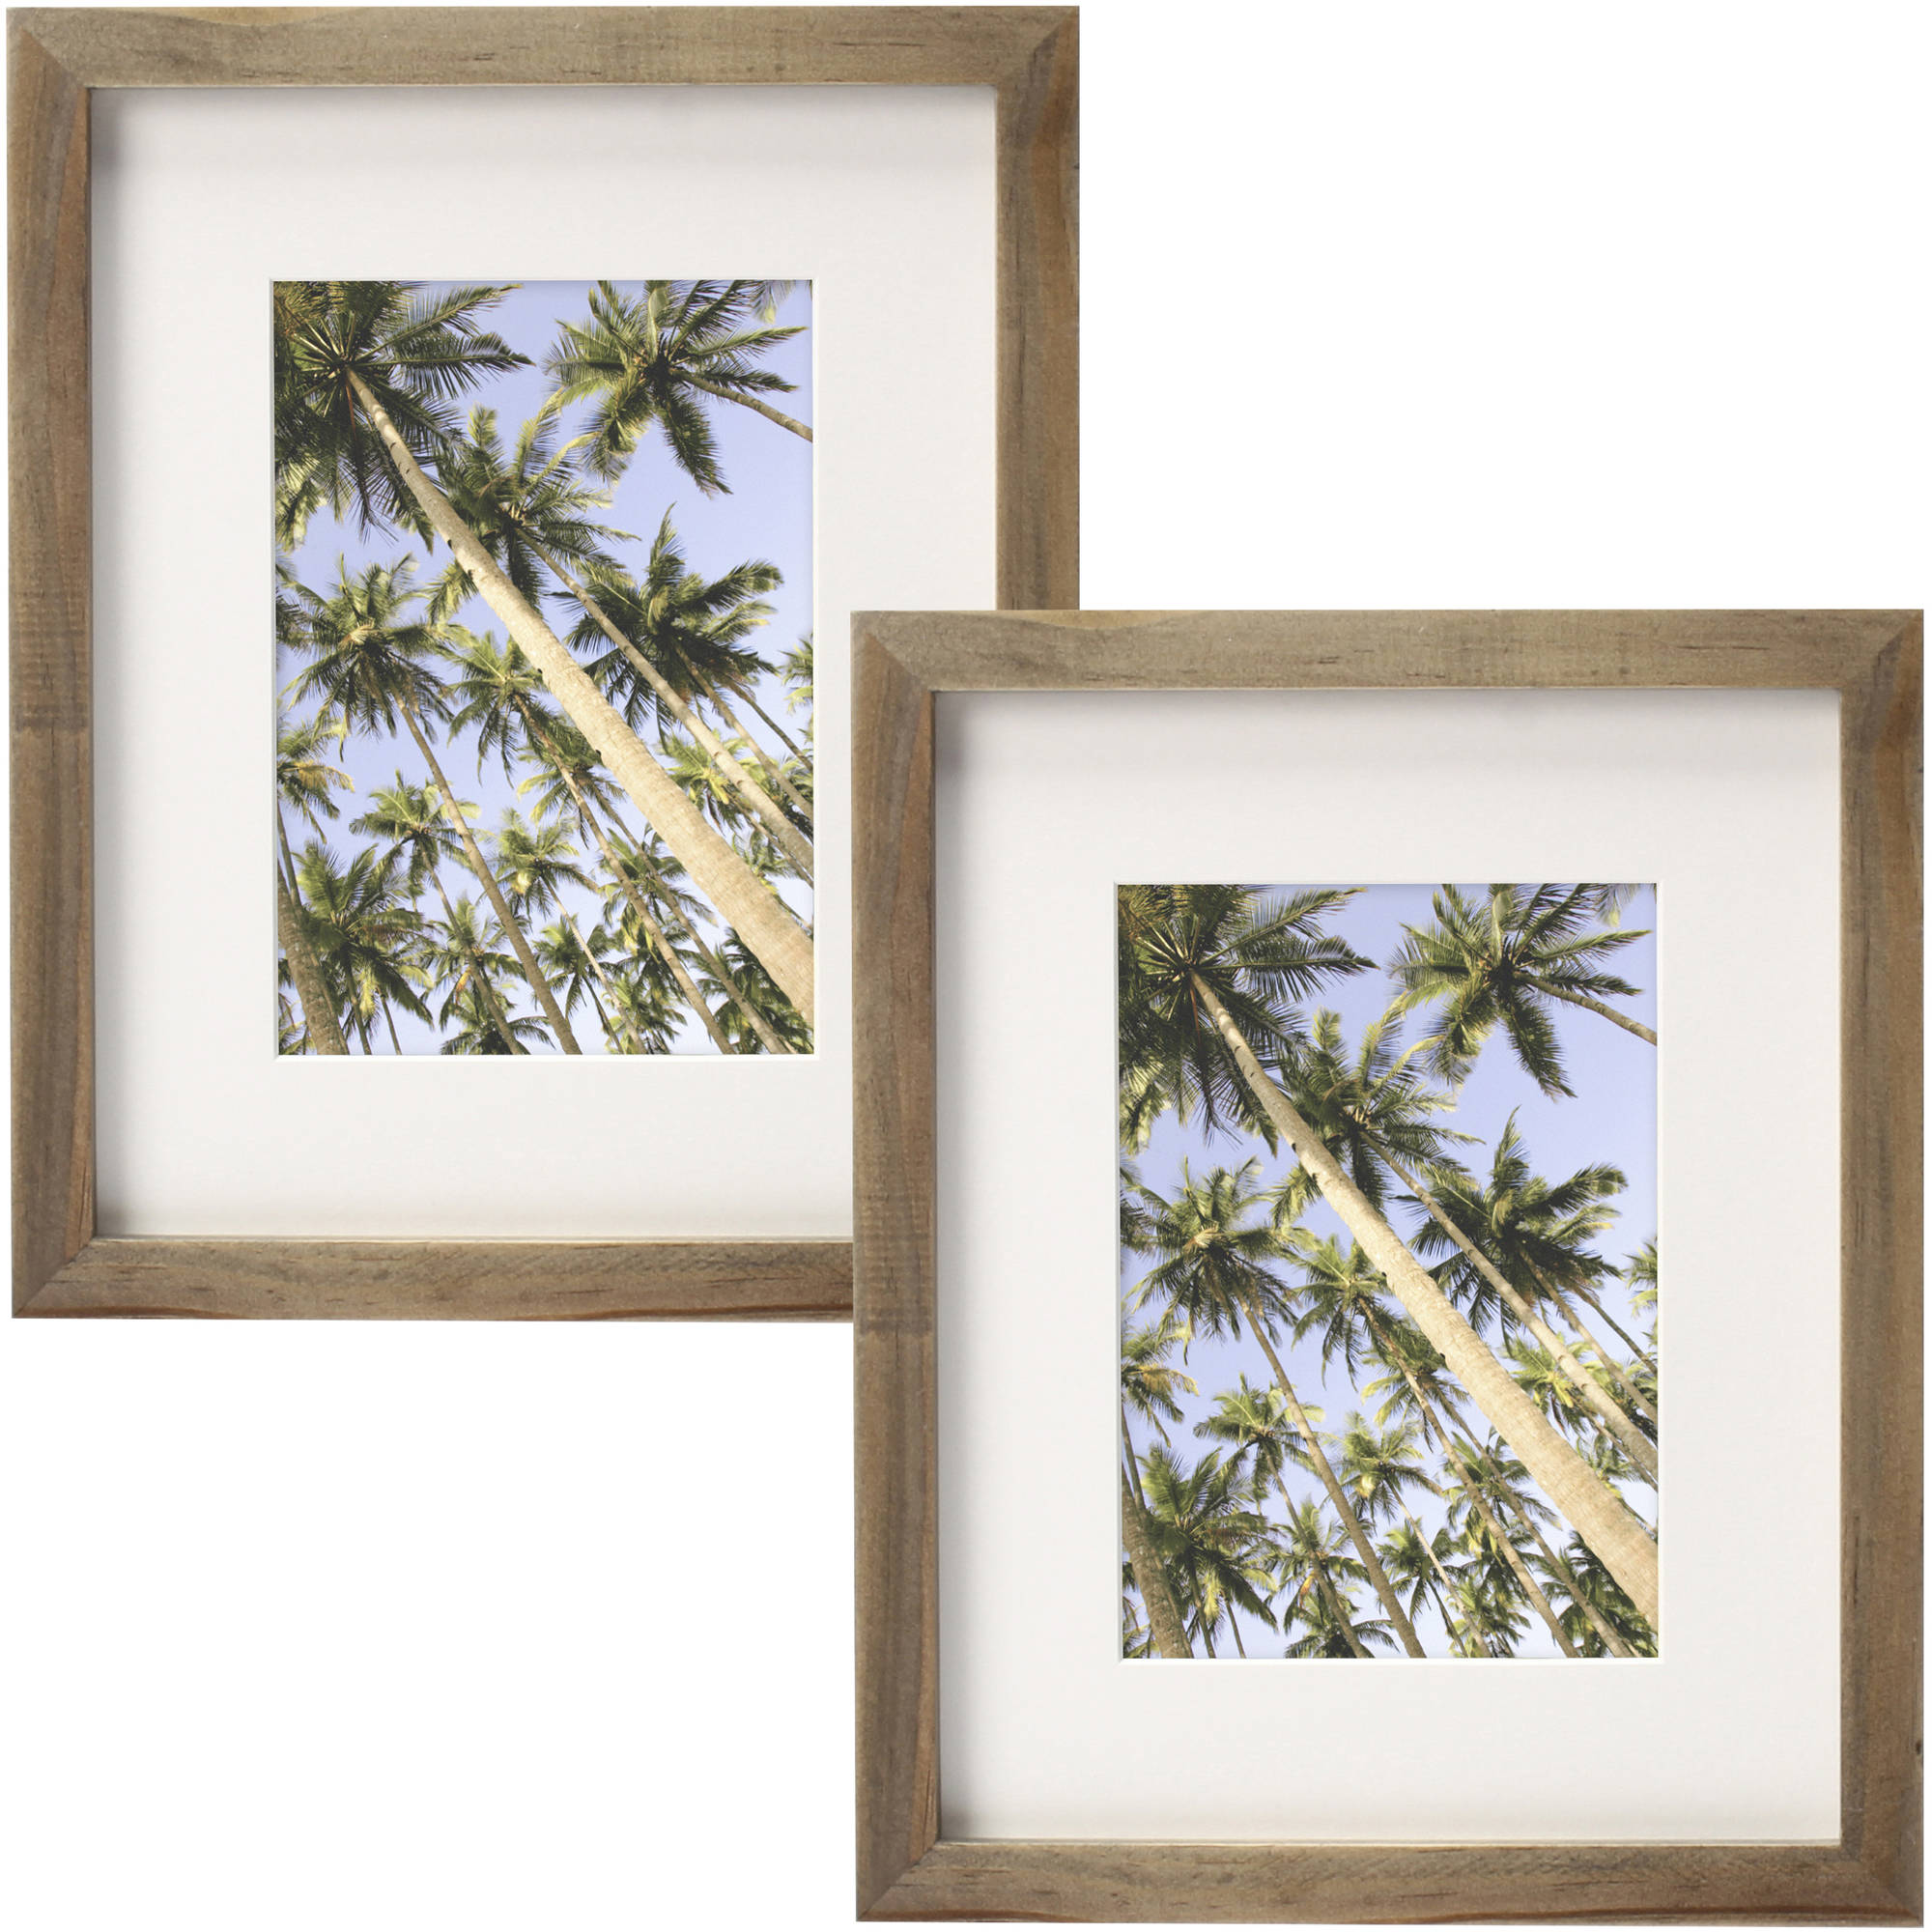 """Better Homes and Gardens Gallery 8"""" x 10"""" (20.32 cm x 25.4 cm) Matted to 5"""" x 7"""" (12.7 cm x 17.78 cm) Solid Wood Picture Frame, Natural Rustic, Set of 2"""